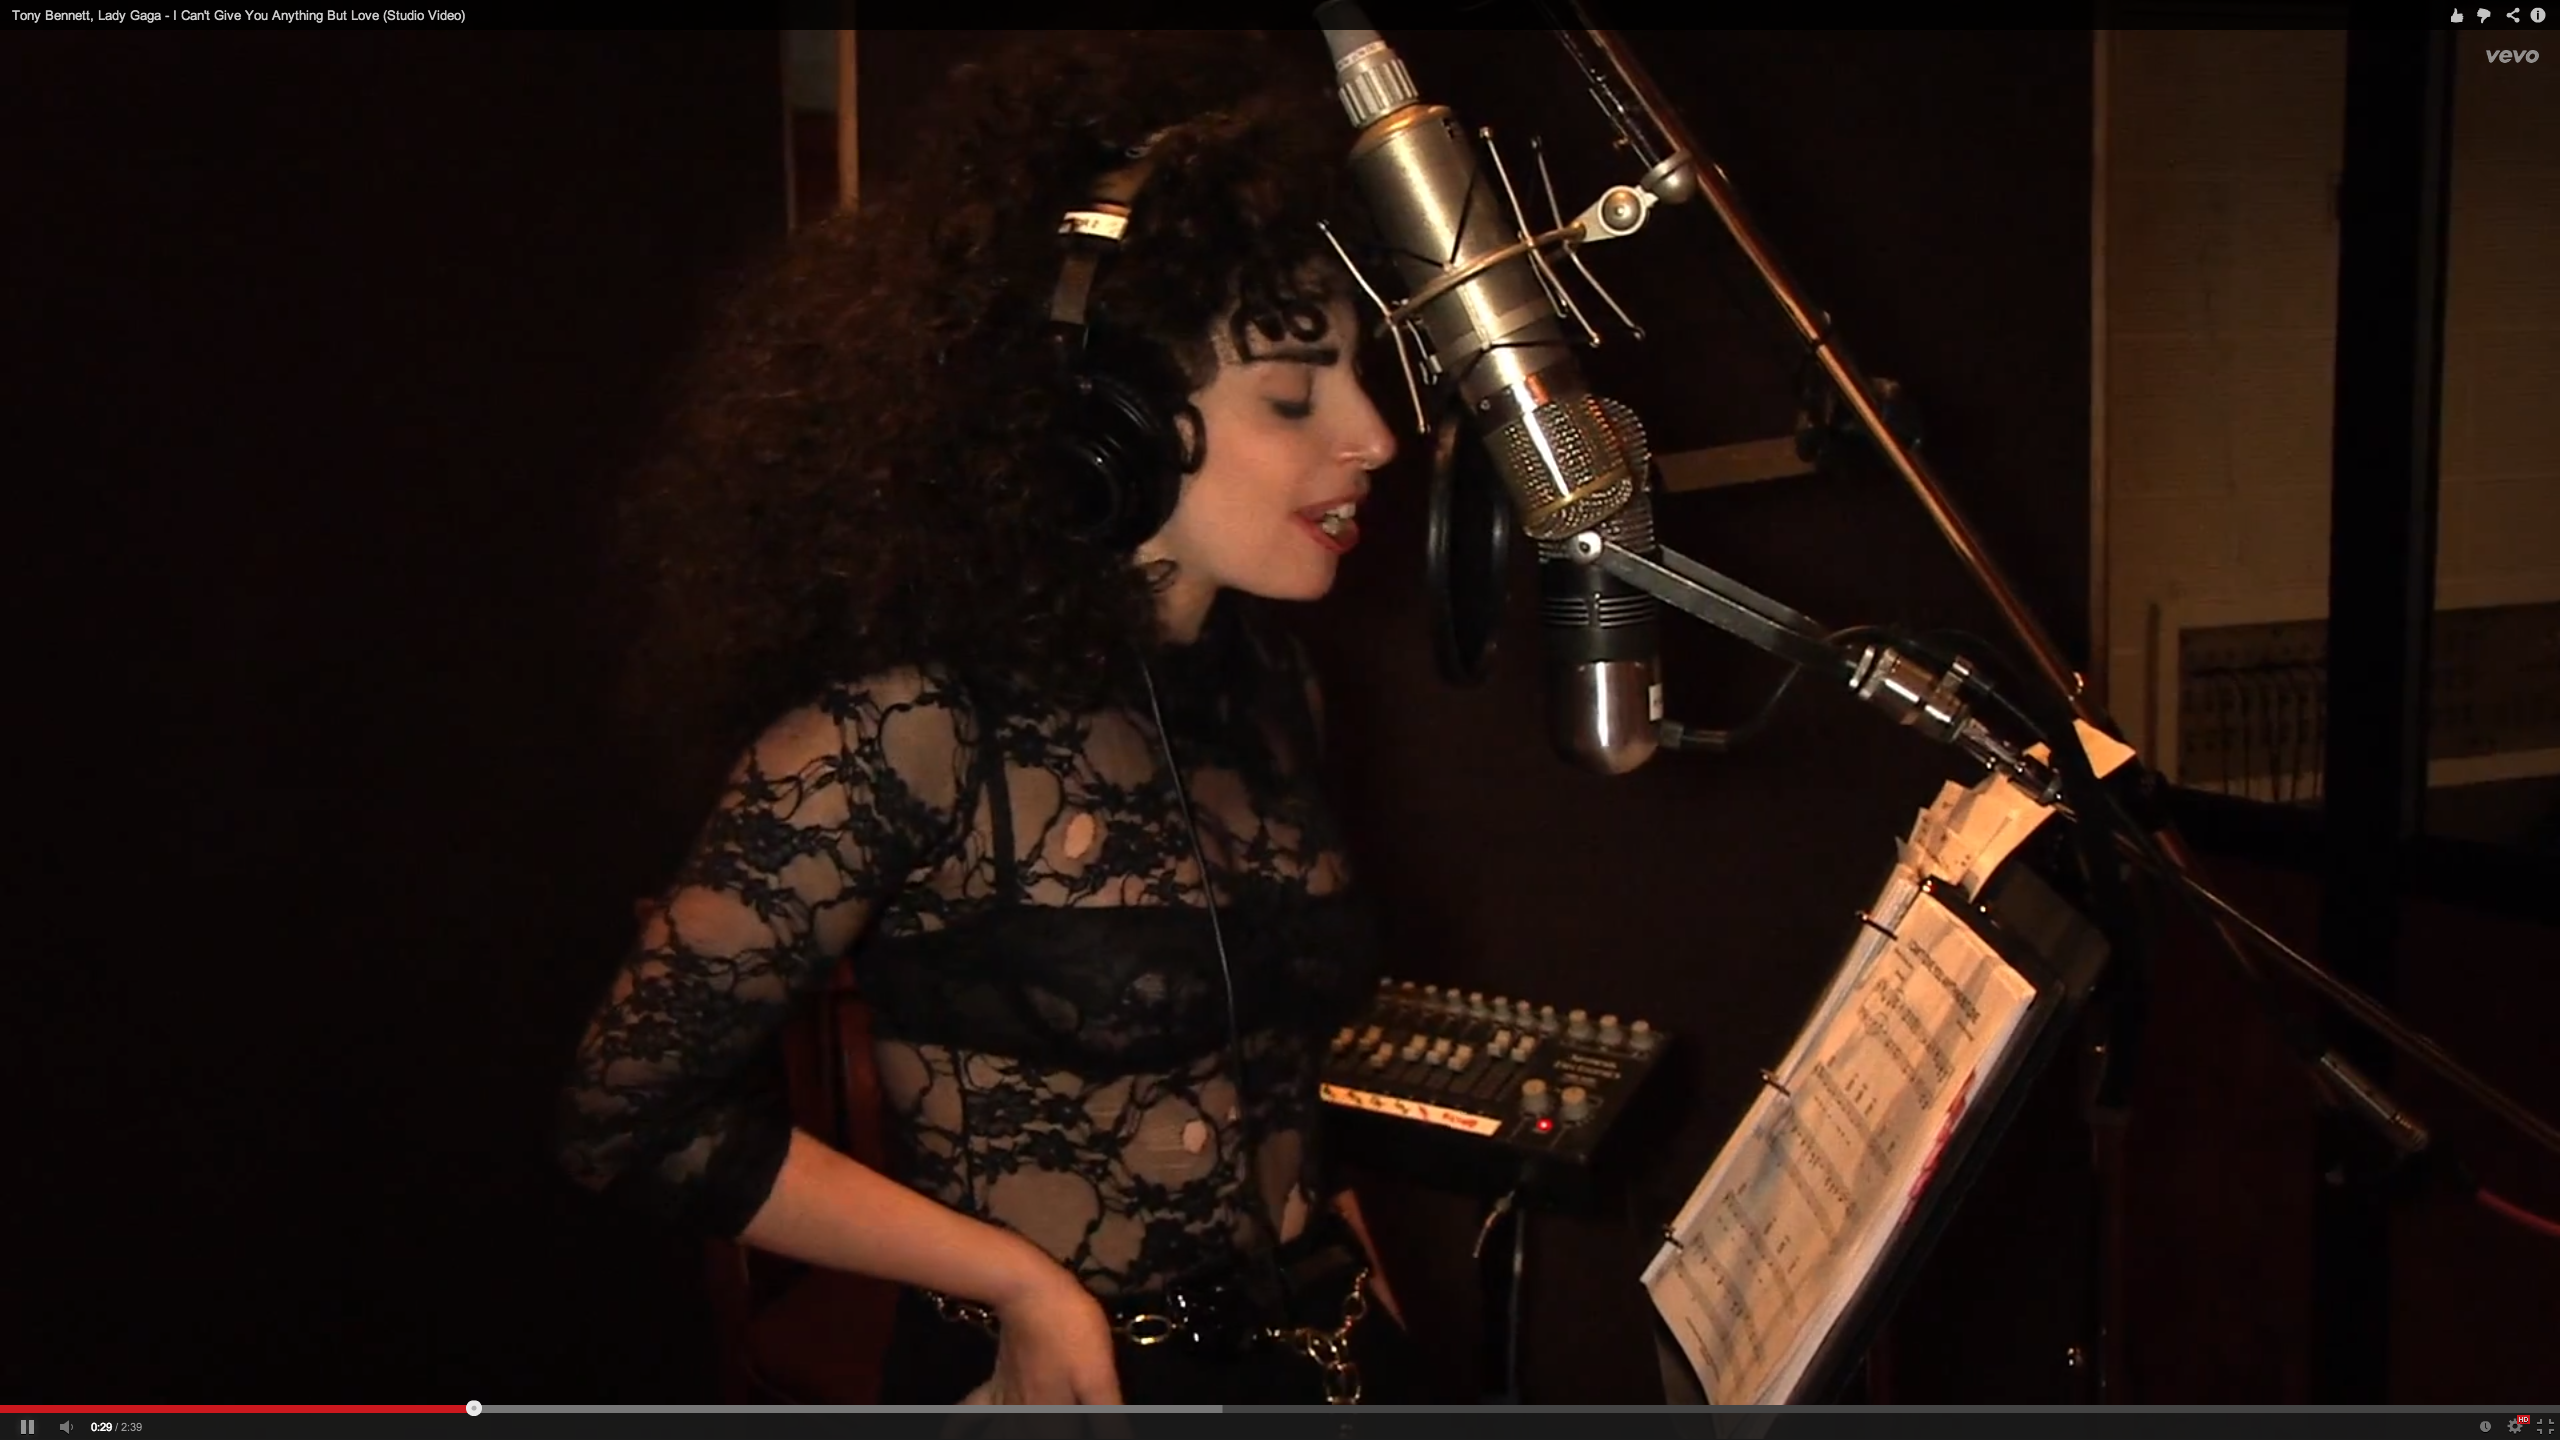 Lady Gaga, Tony Bennett Proclaim, 'I Can't Give You Anything But